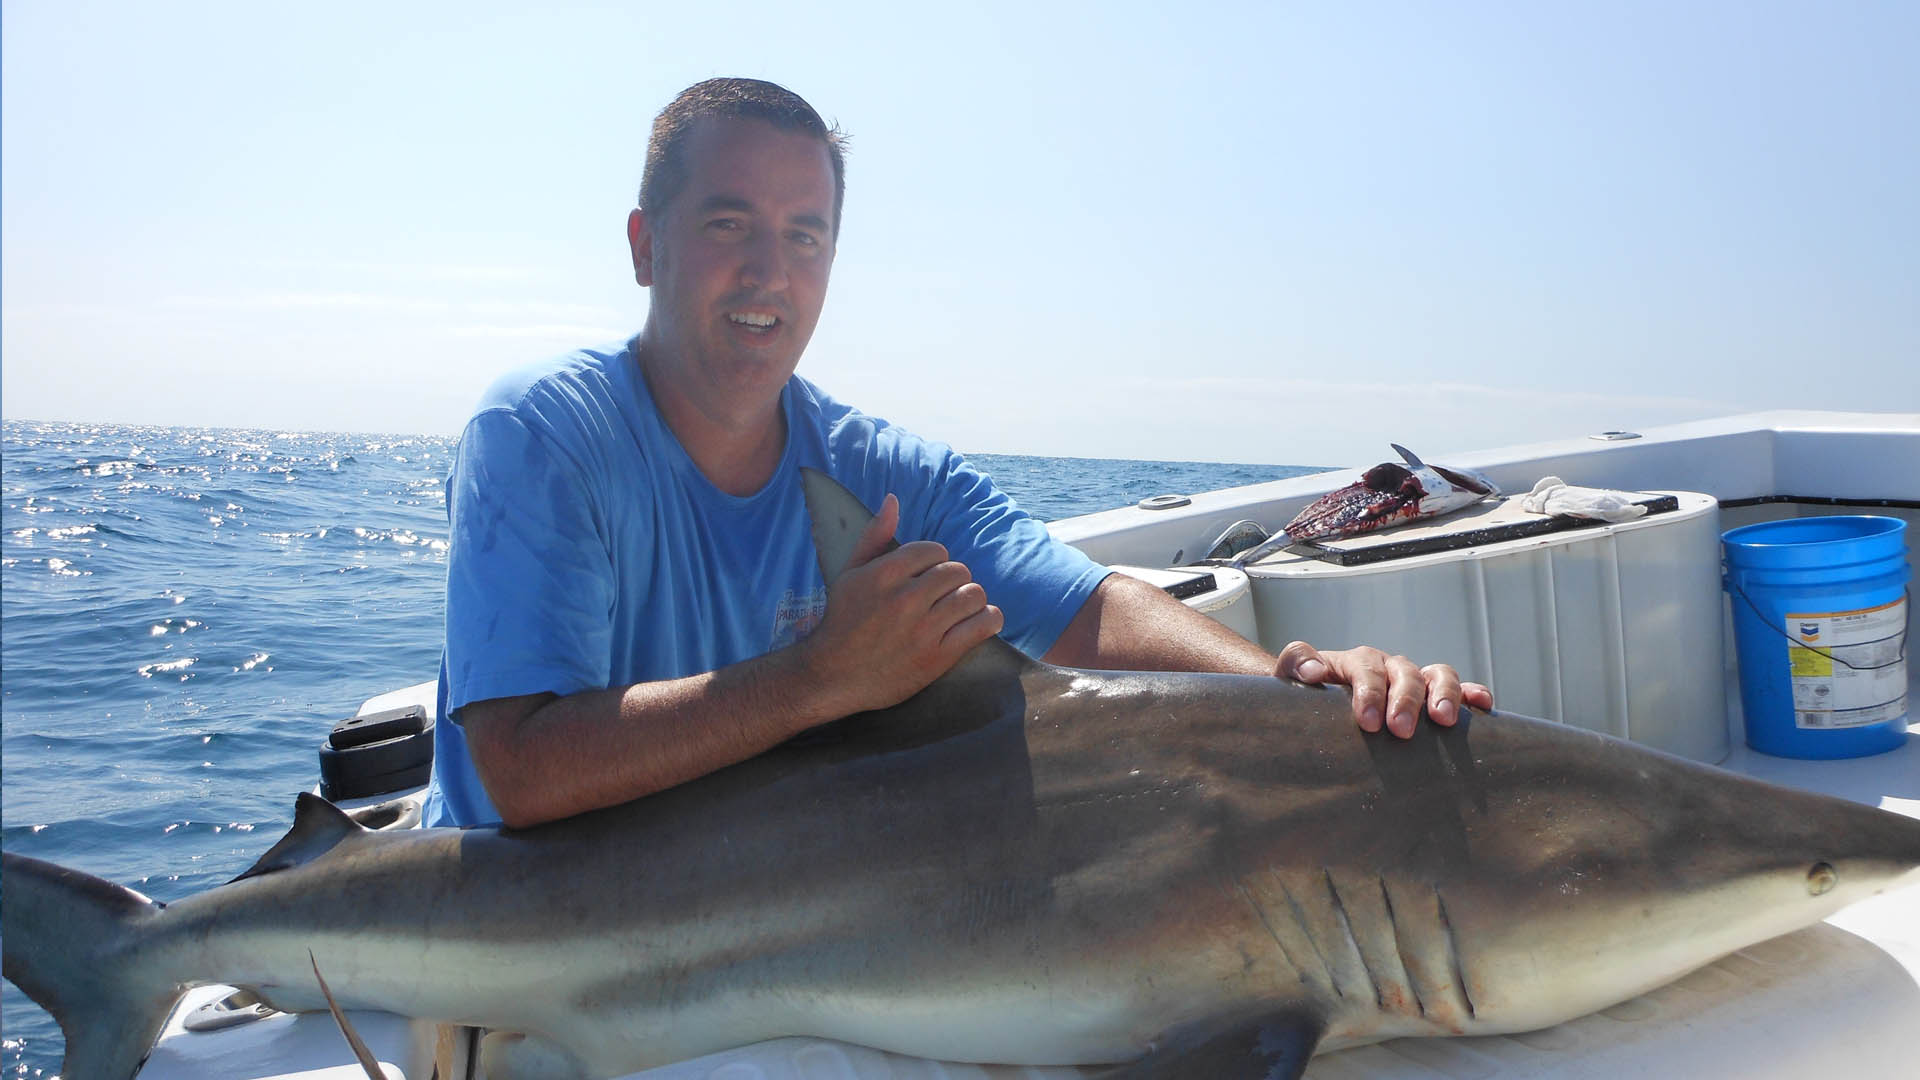 Large shark caught on fishing charter off the coast of St. Petersburg, FL.